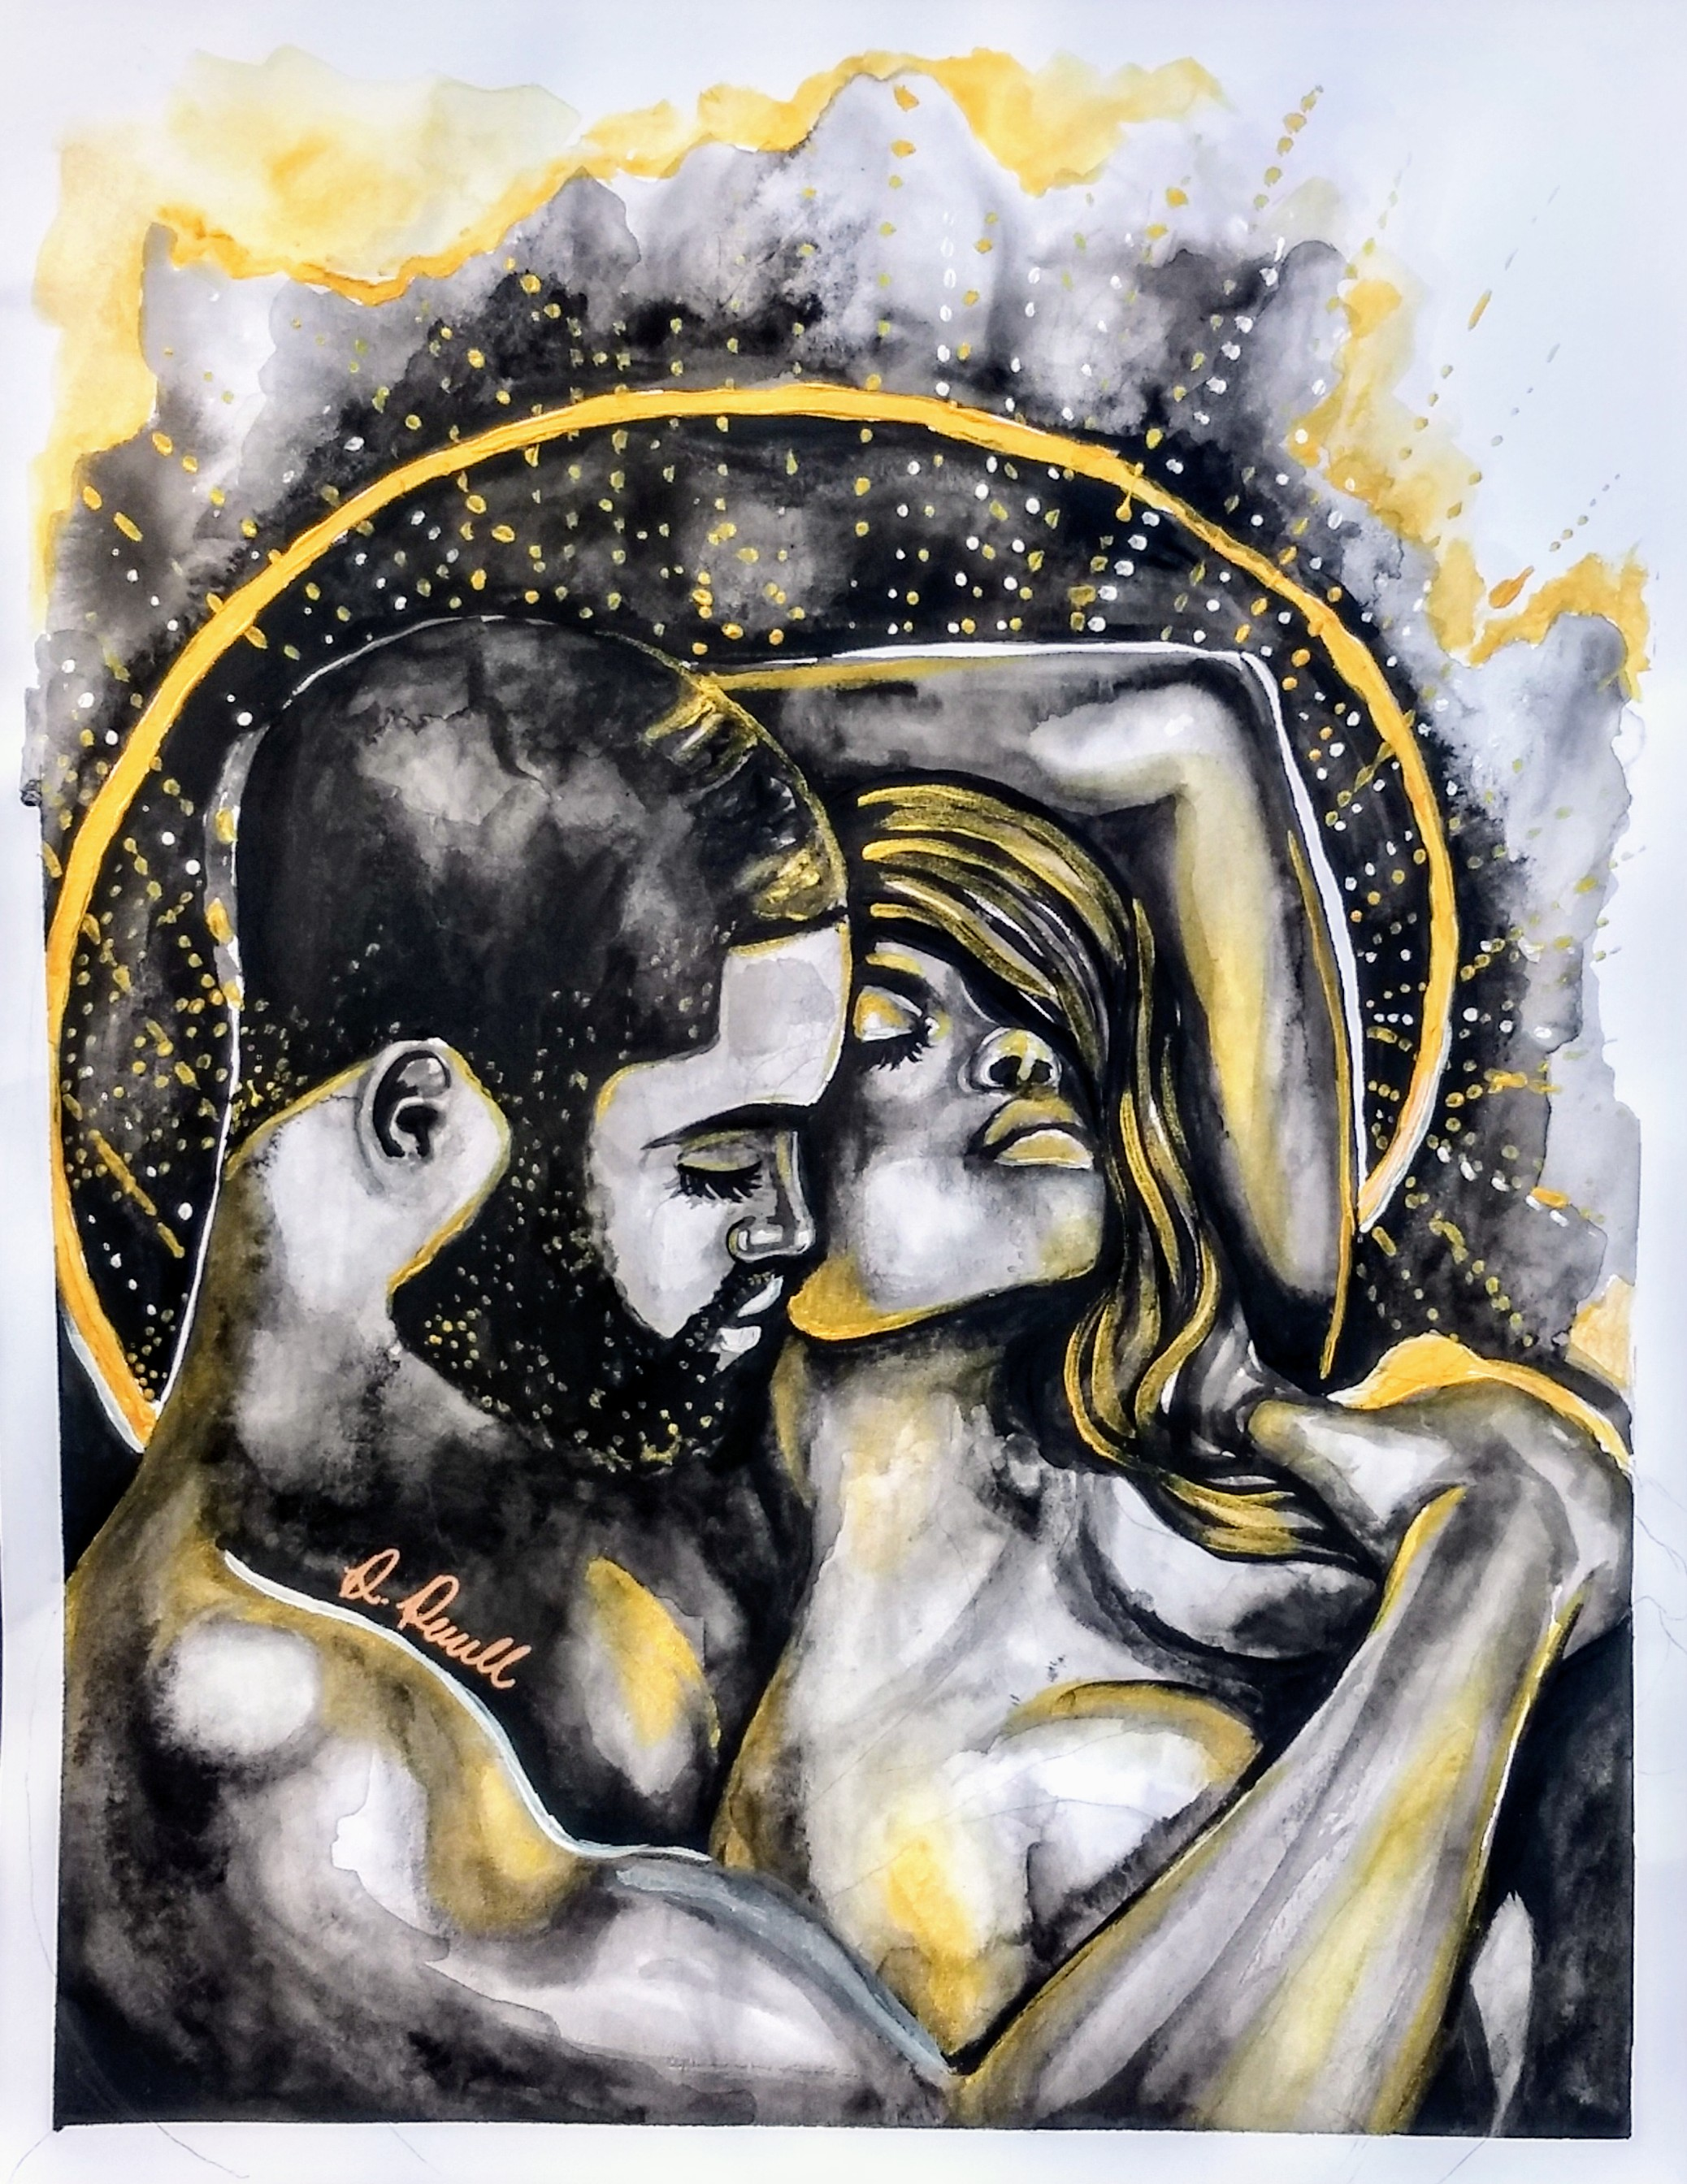 Intimacy Art By Destiney Powell Poetically Illustrated Art.jpg